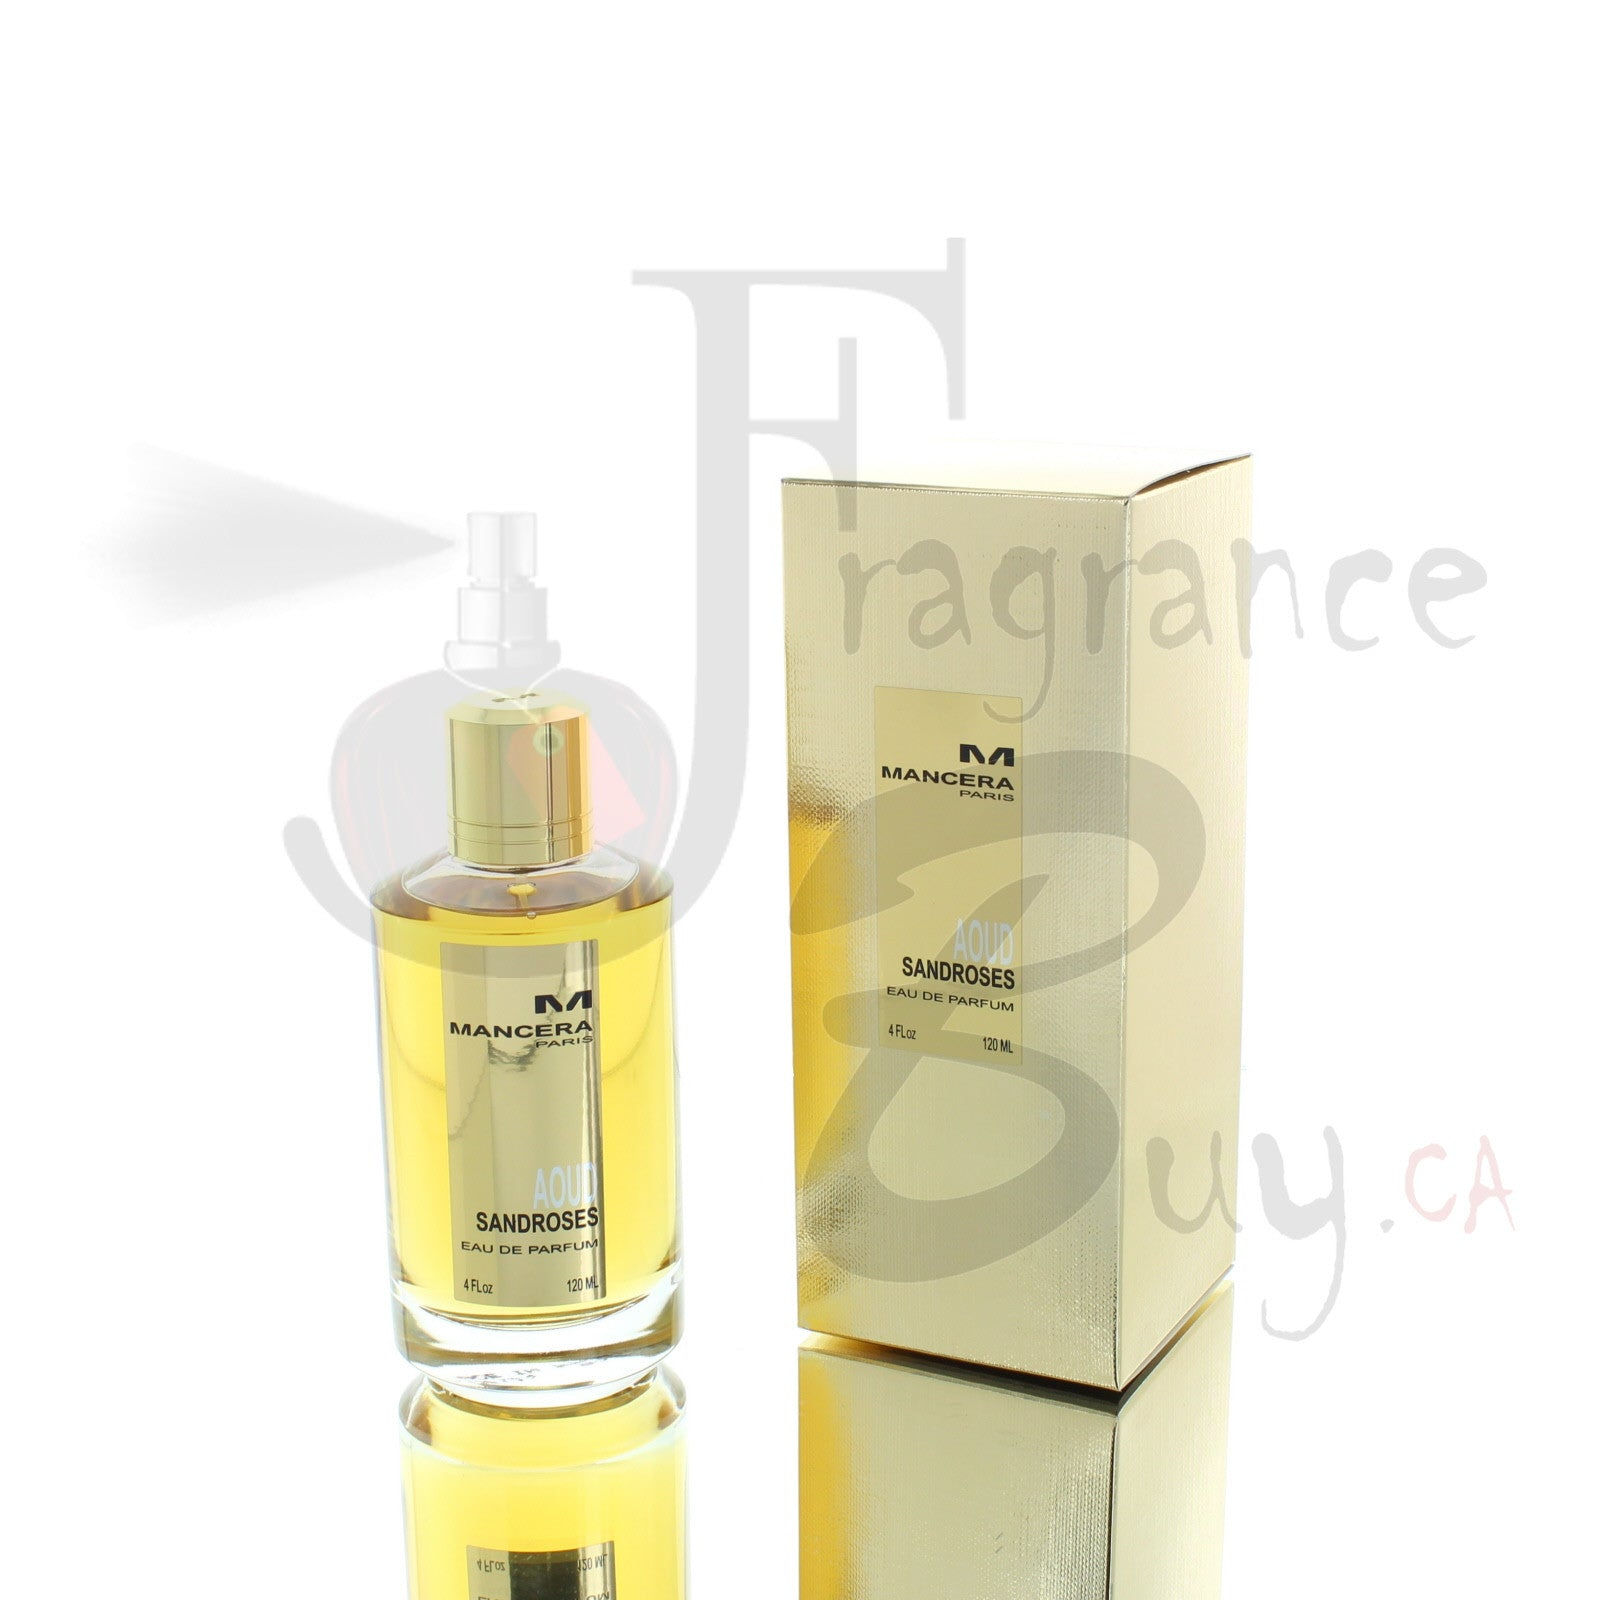 Mancera Aoud Sandroses For Man/Woman